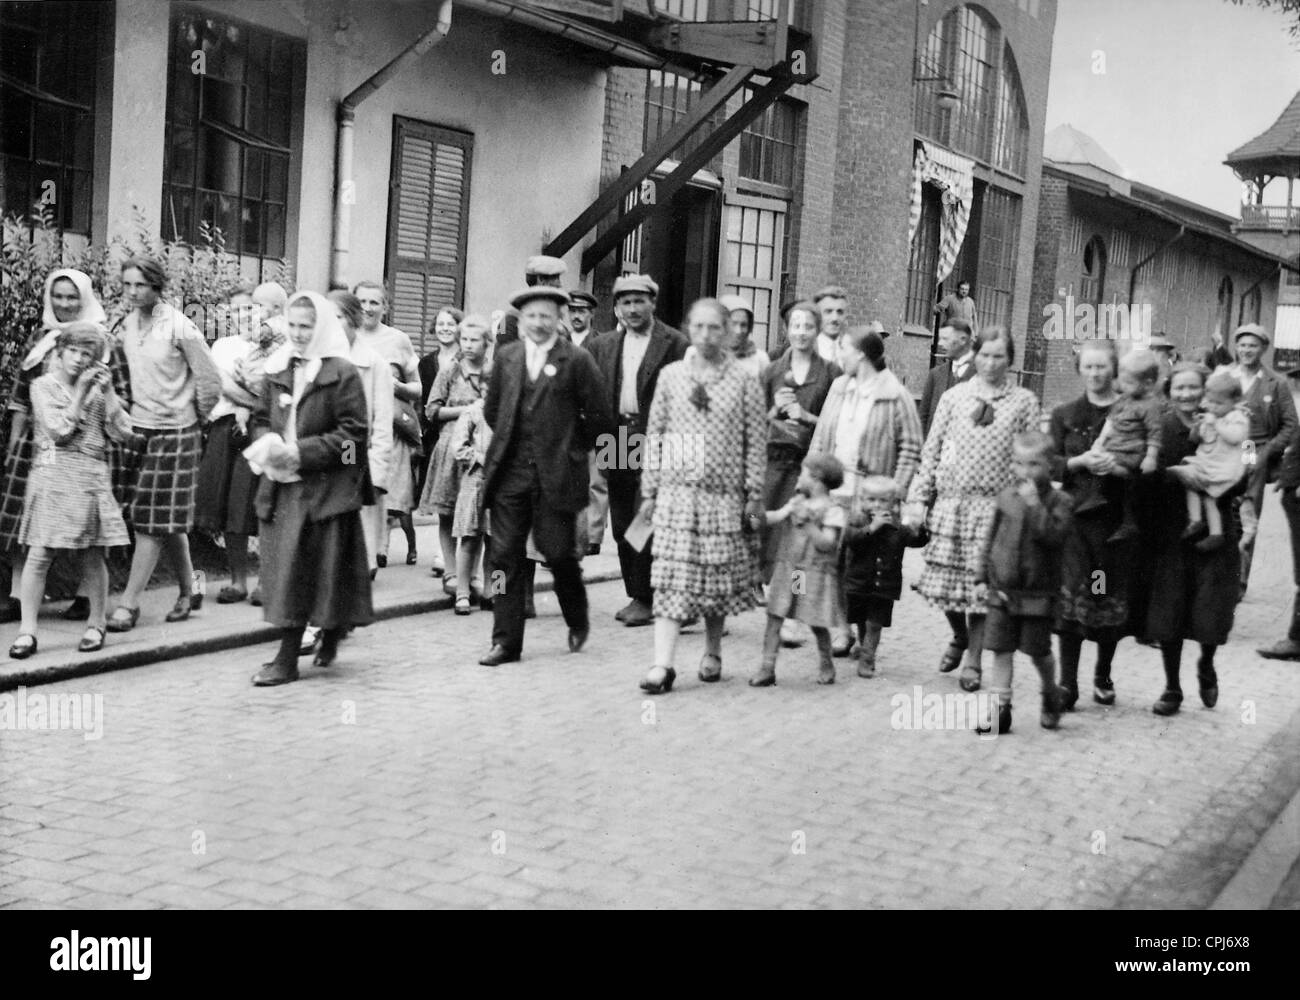 Emigrant families in the Port of Hamburg, 1930 - Stock Image